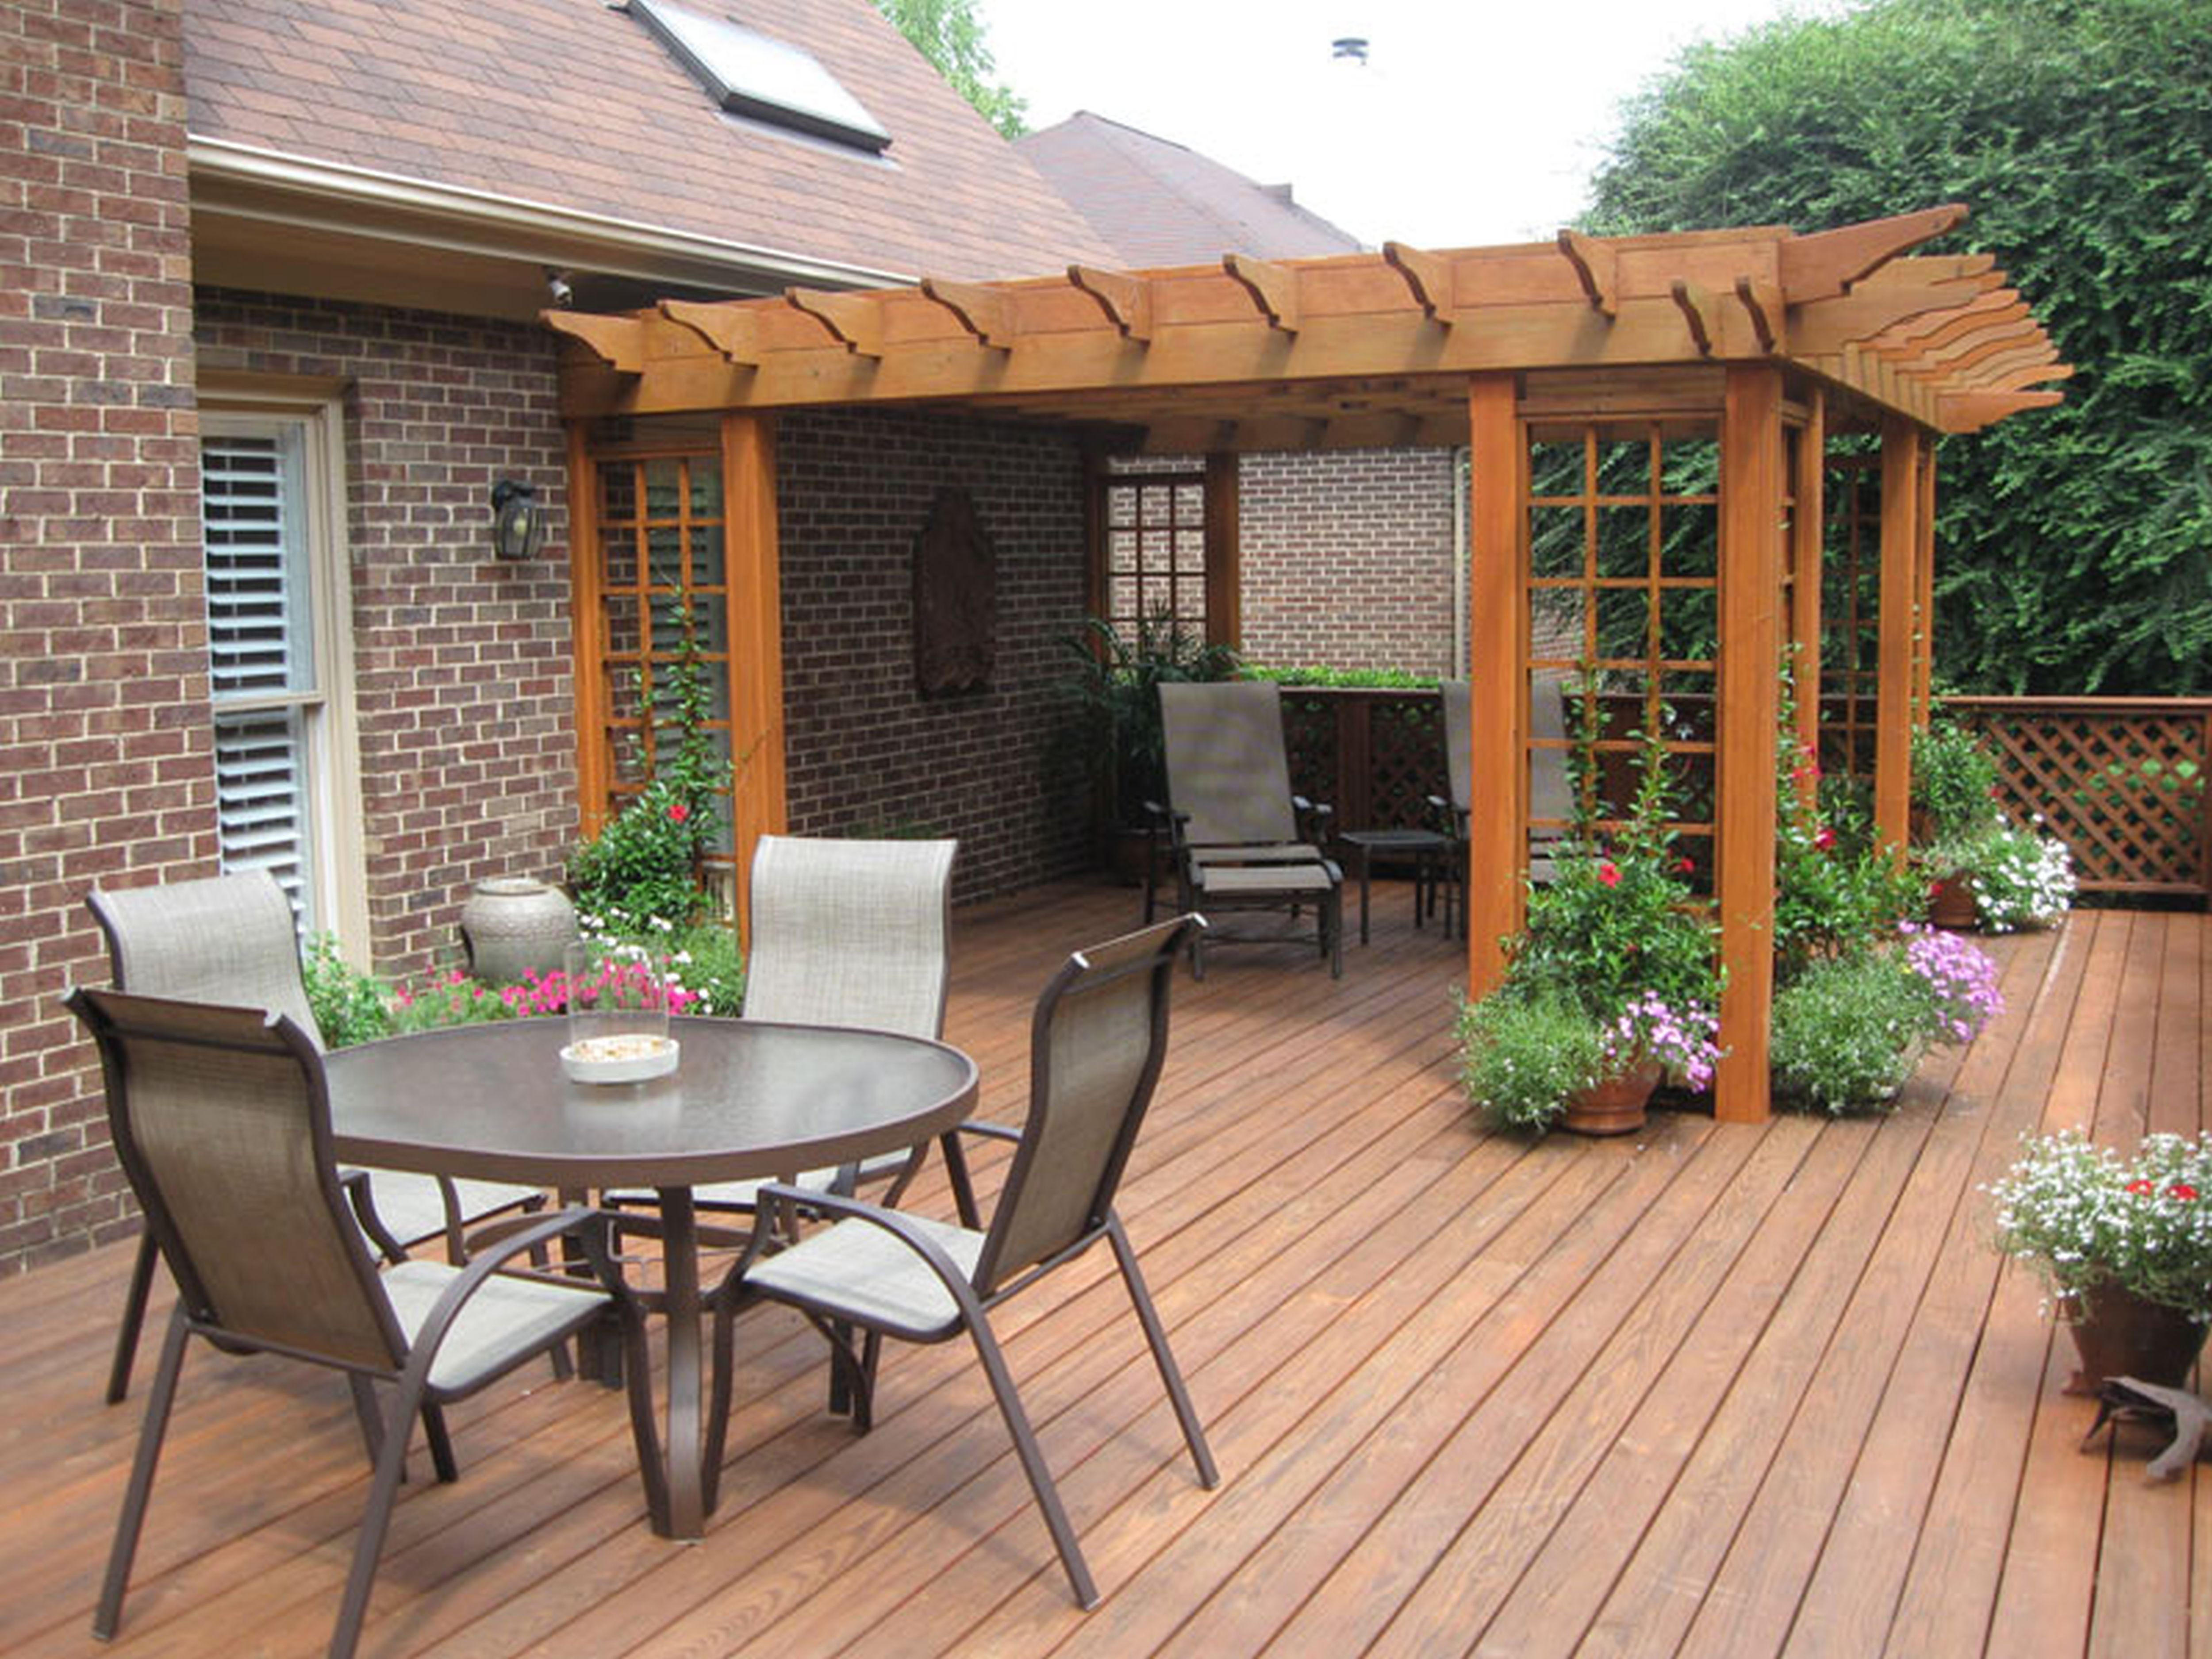 Backyard patio covers from usefulness to style homesfeed for Patio deck decorating ideas